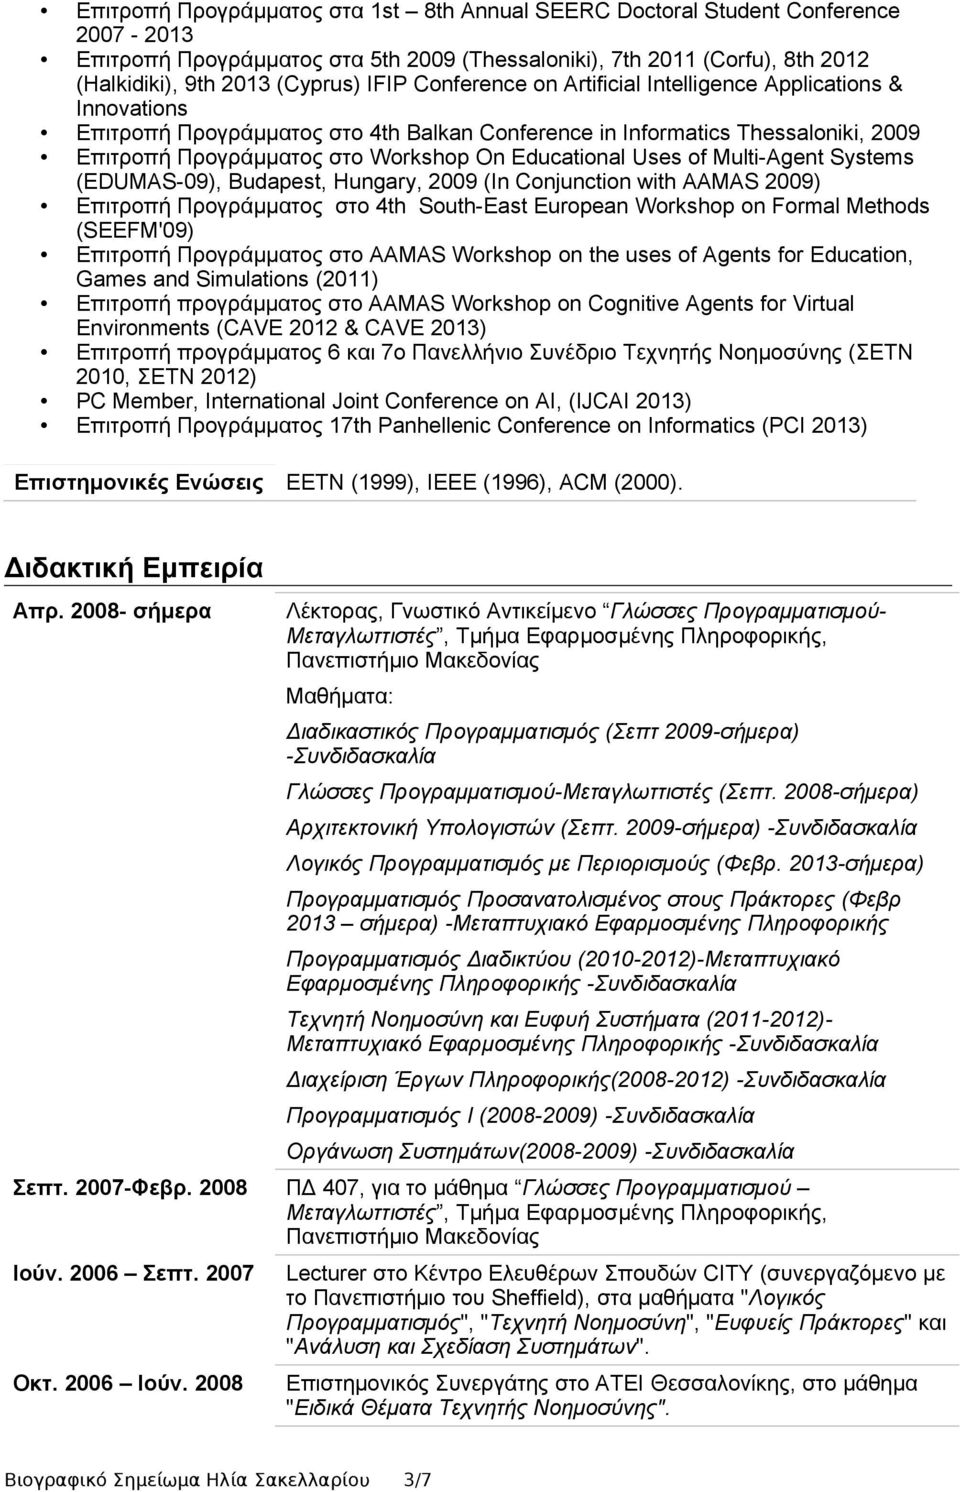 Uses of Multi-Agent Systems (EDUMAS-09), Budapest, Hungary, 2009 (In Conjunction with AAMAS 2009) Επιτροπή Προγράμματος στο 4th South-East European Workshop on Formal Methods (SEEFM'09) Επιτροπή